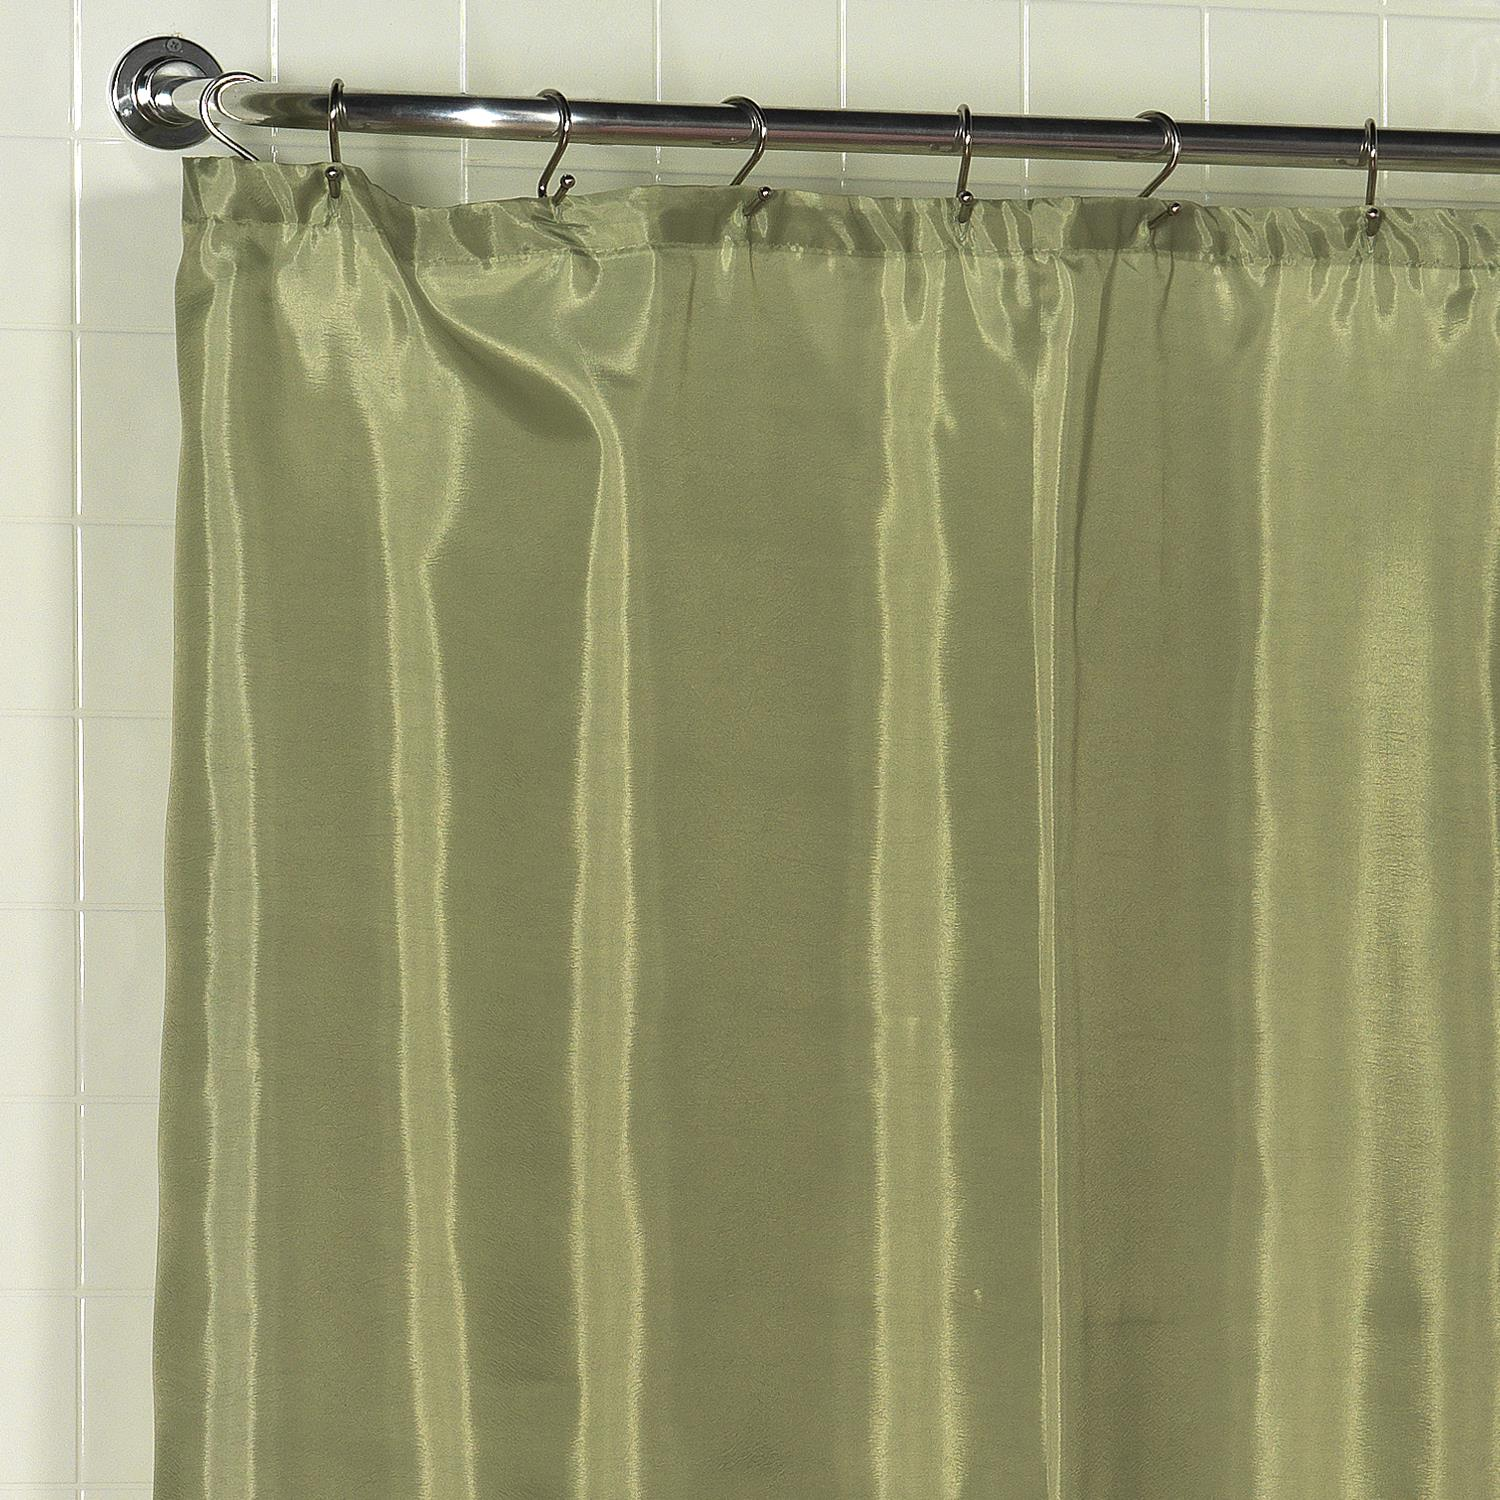 Details About Carnation Home Standard Sized Polyester Fabric Shower Curtain Liner In Sage